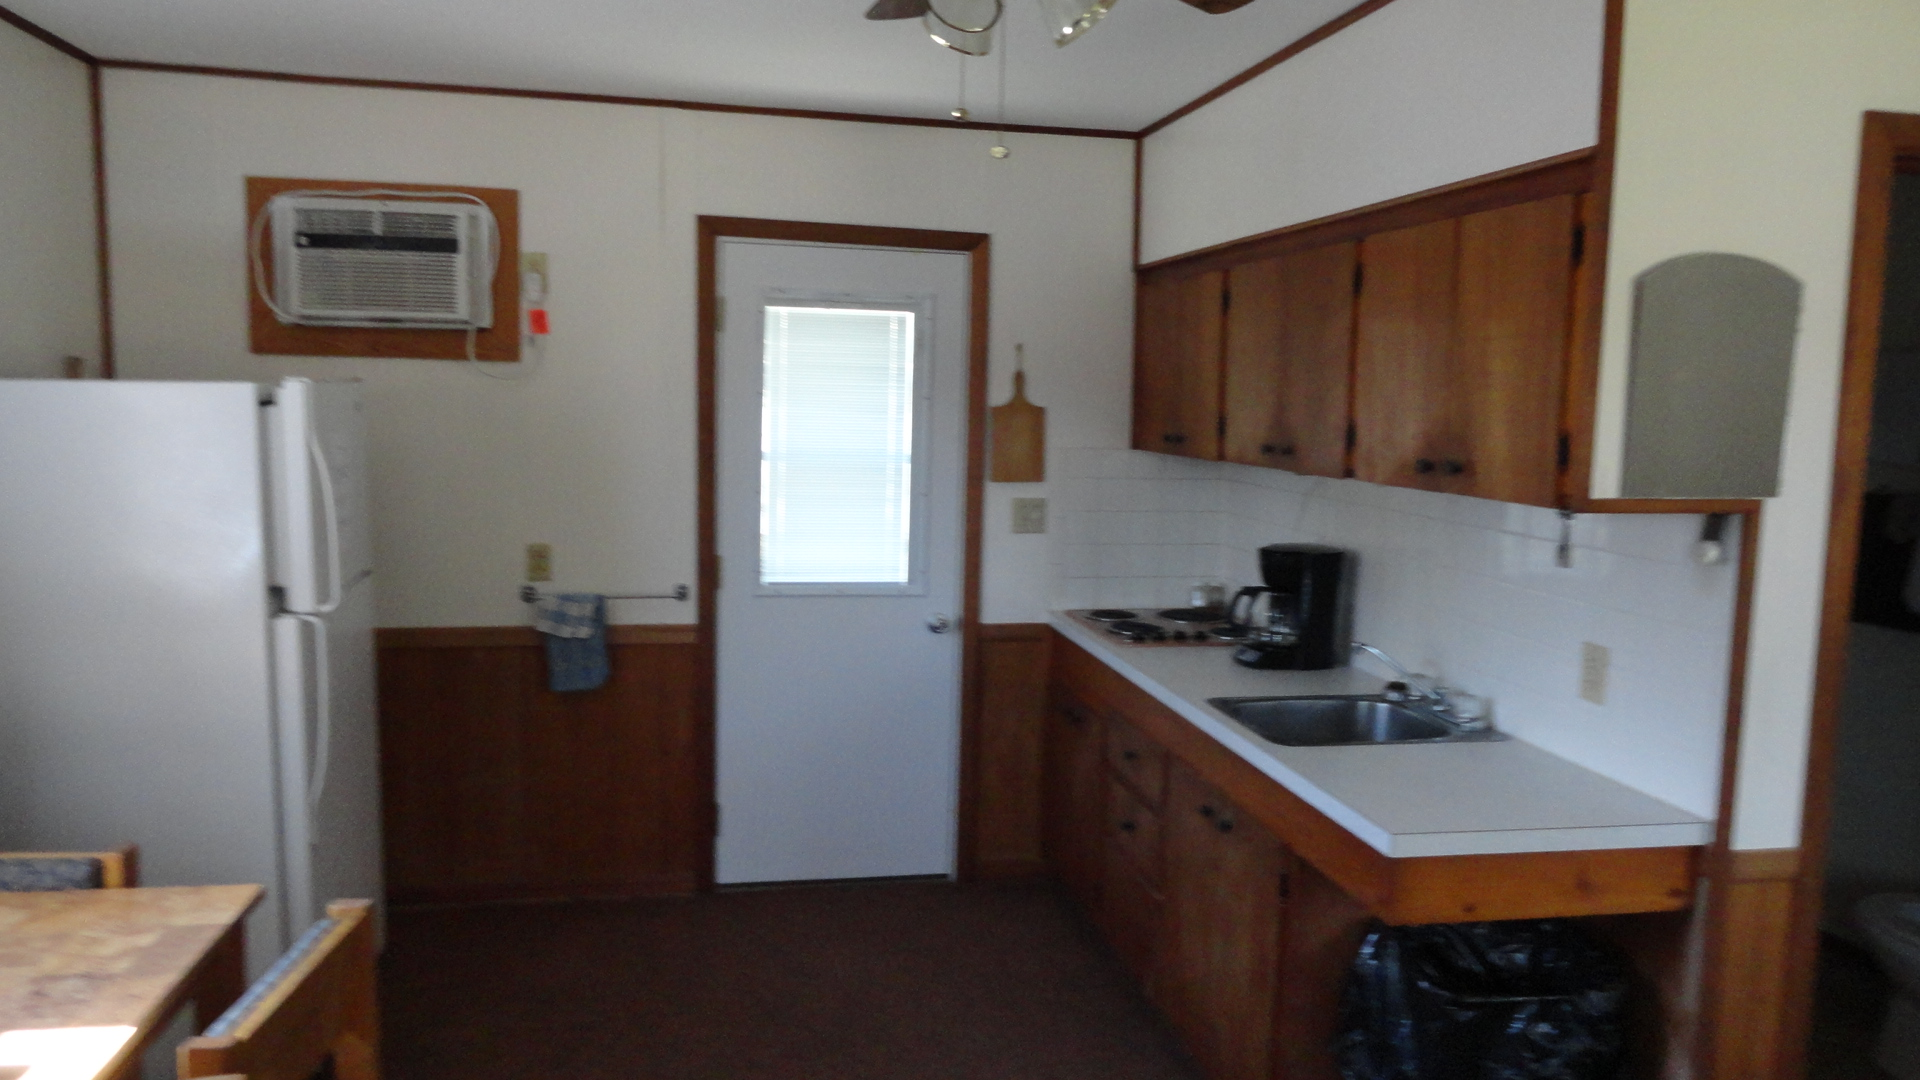 Cabin #1 or 2 (kitchen area)